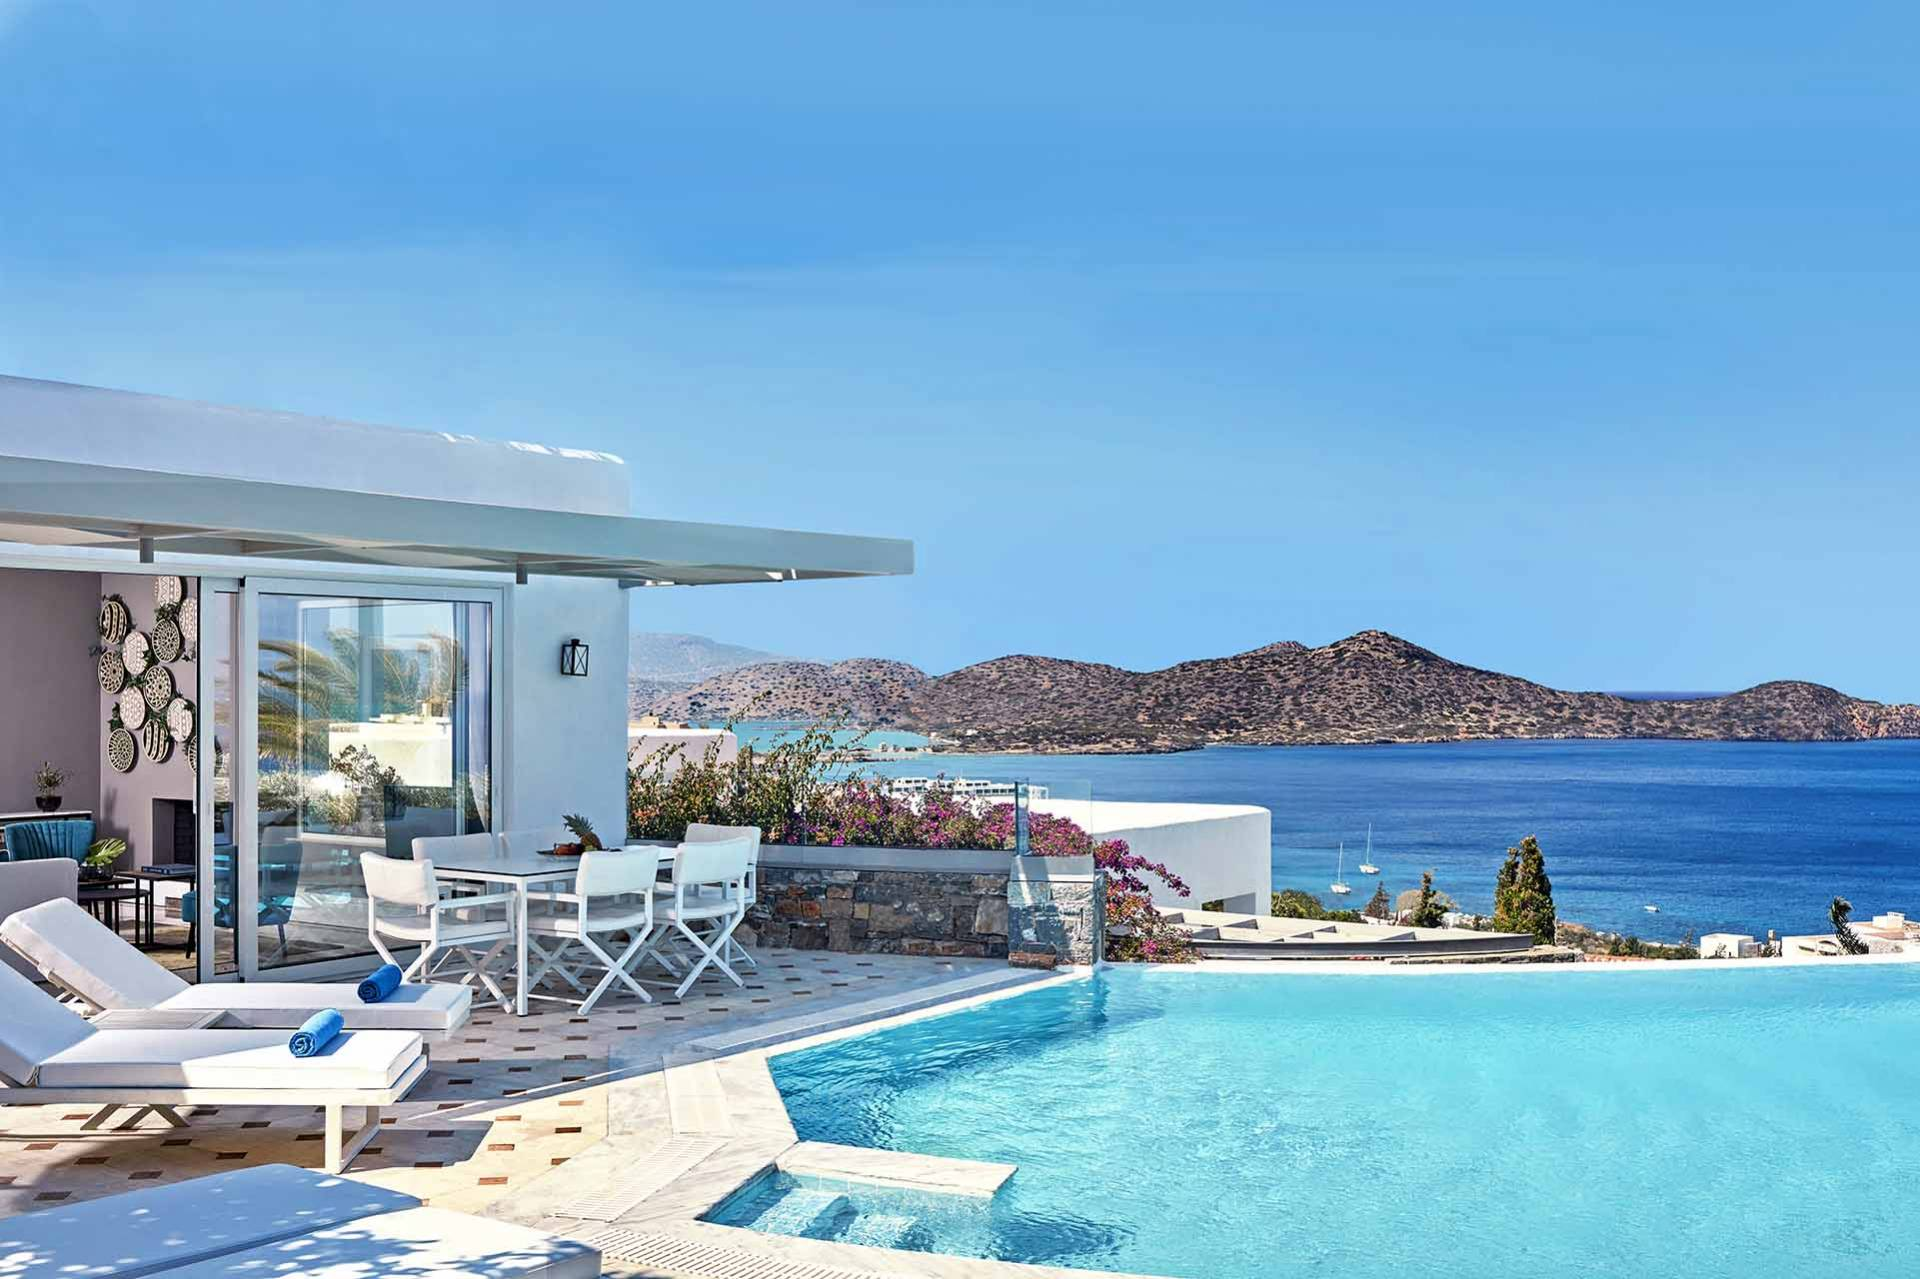 Crete luxury villa Mediterranean Pool in Elounda